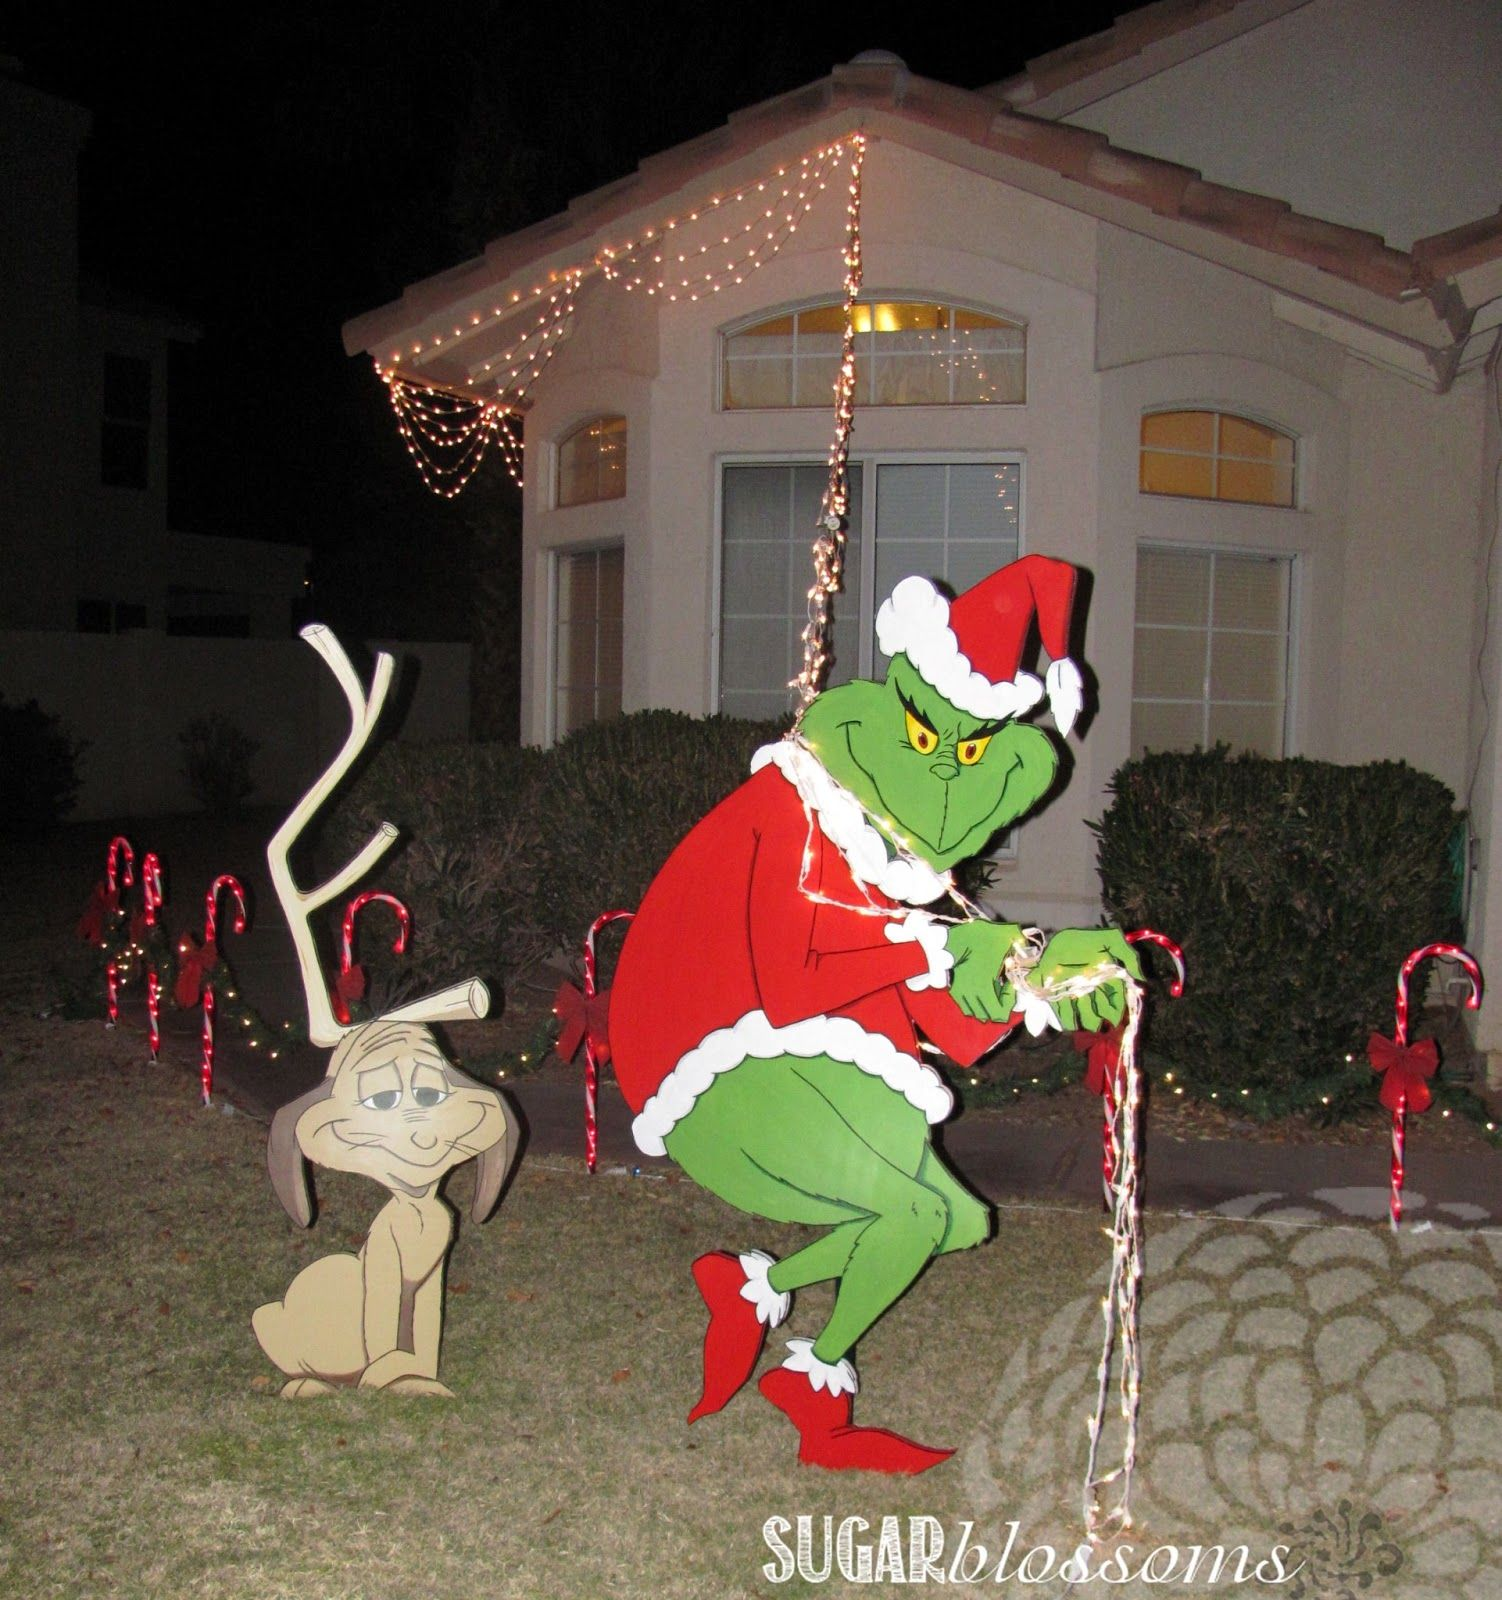 Christmas Decorations The Grinch